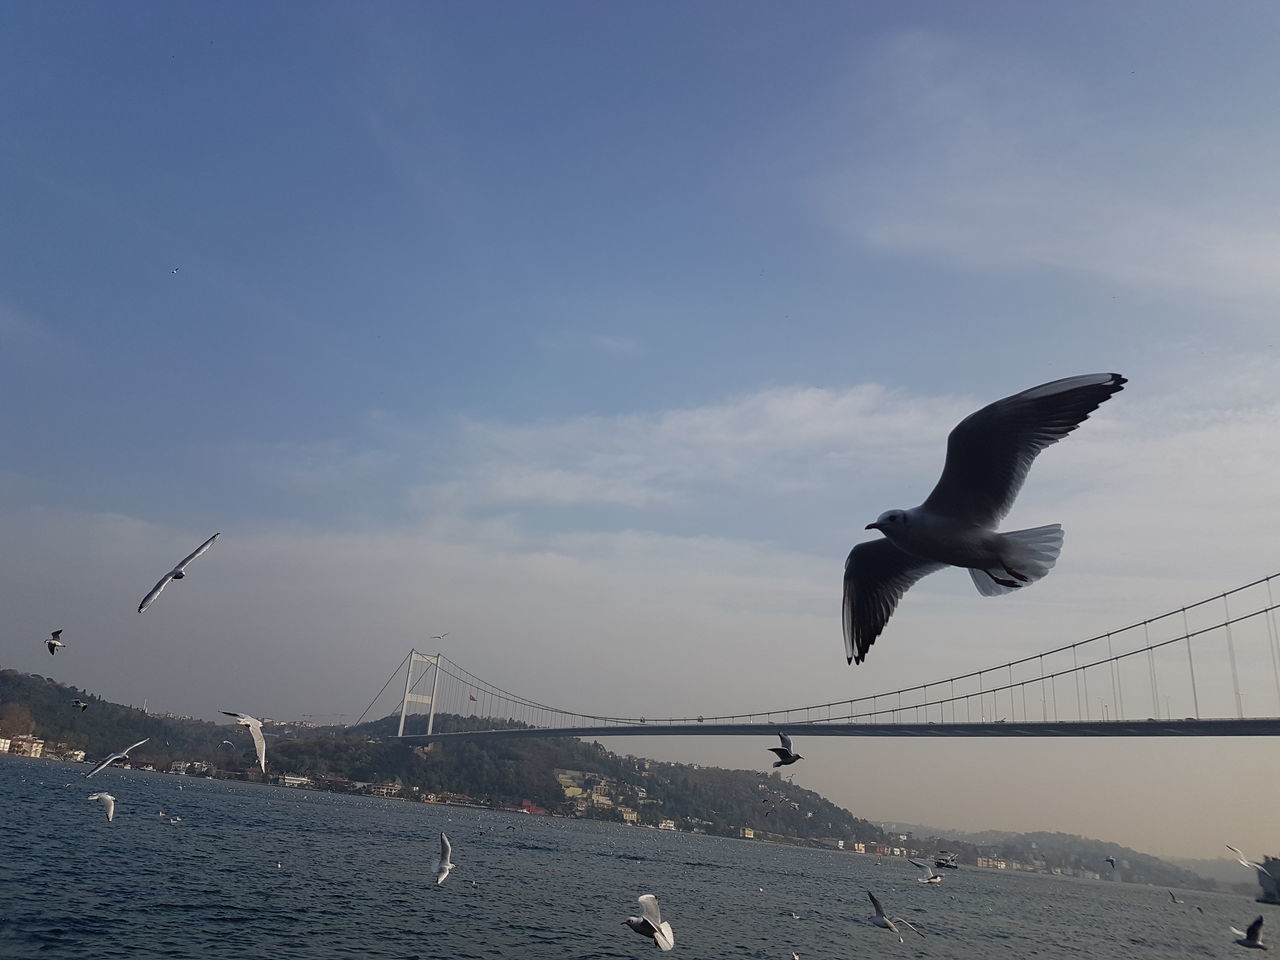 flying, bird, water, sea, animal themes, sky, animals in the wild, mid-air, spread wings, connection, bridge - man made structure, seagull, nature, outdoors, day, animal wildlife, suspension bridge, no people, horizon over water, architecture, beauty in nature, swan